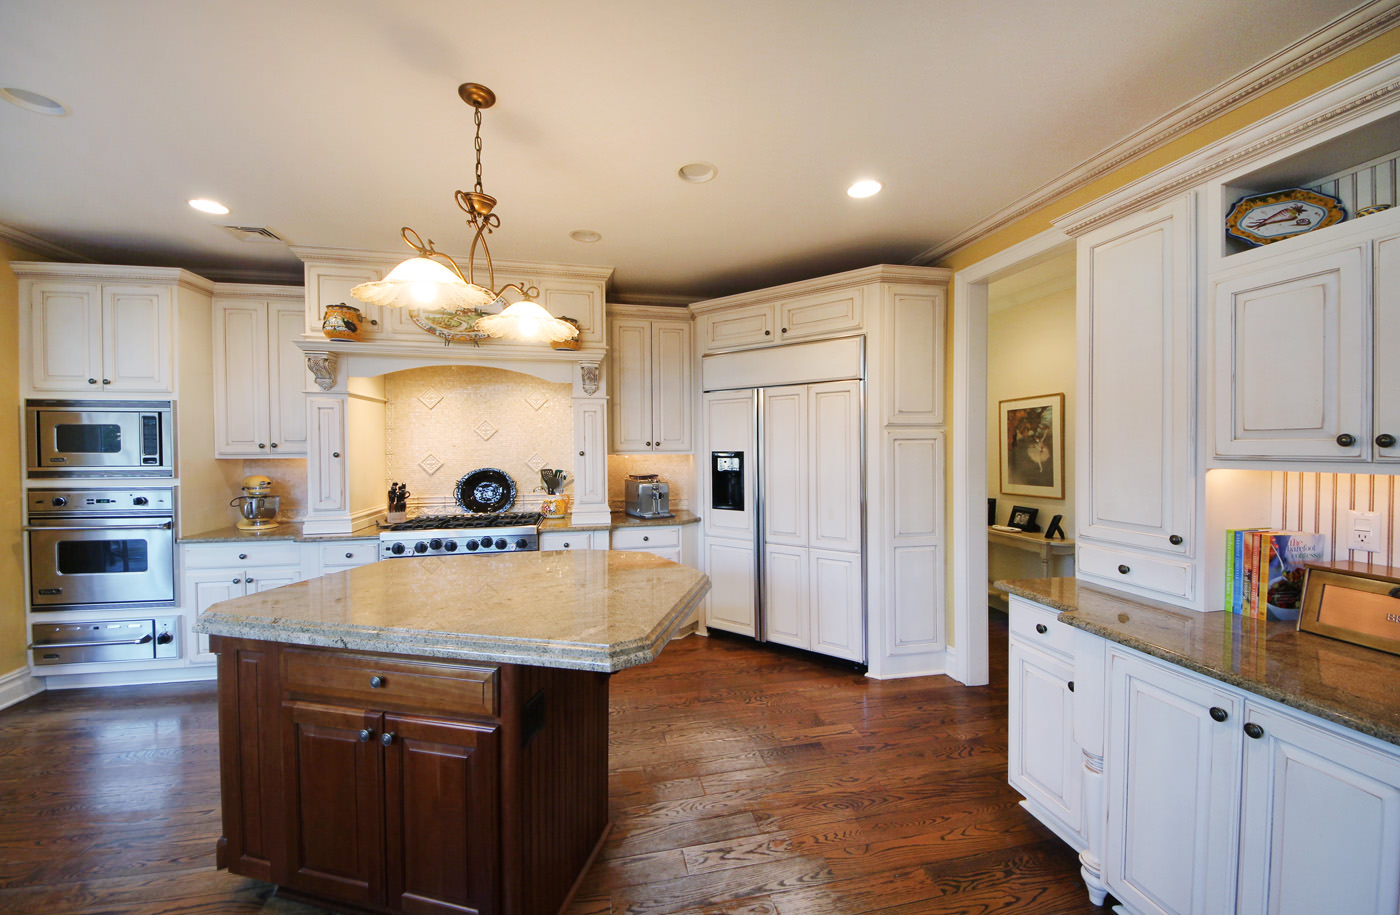 Kitchen cabinets summit nj - 21 Sunset Drive Summit Nj 07901 Sold For Full Price